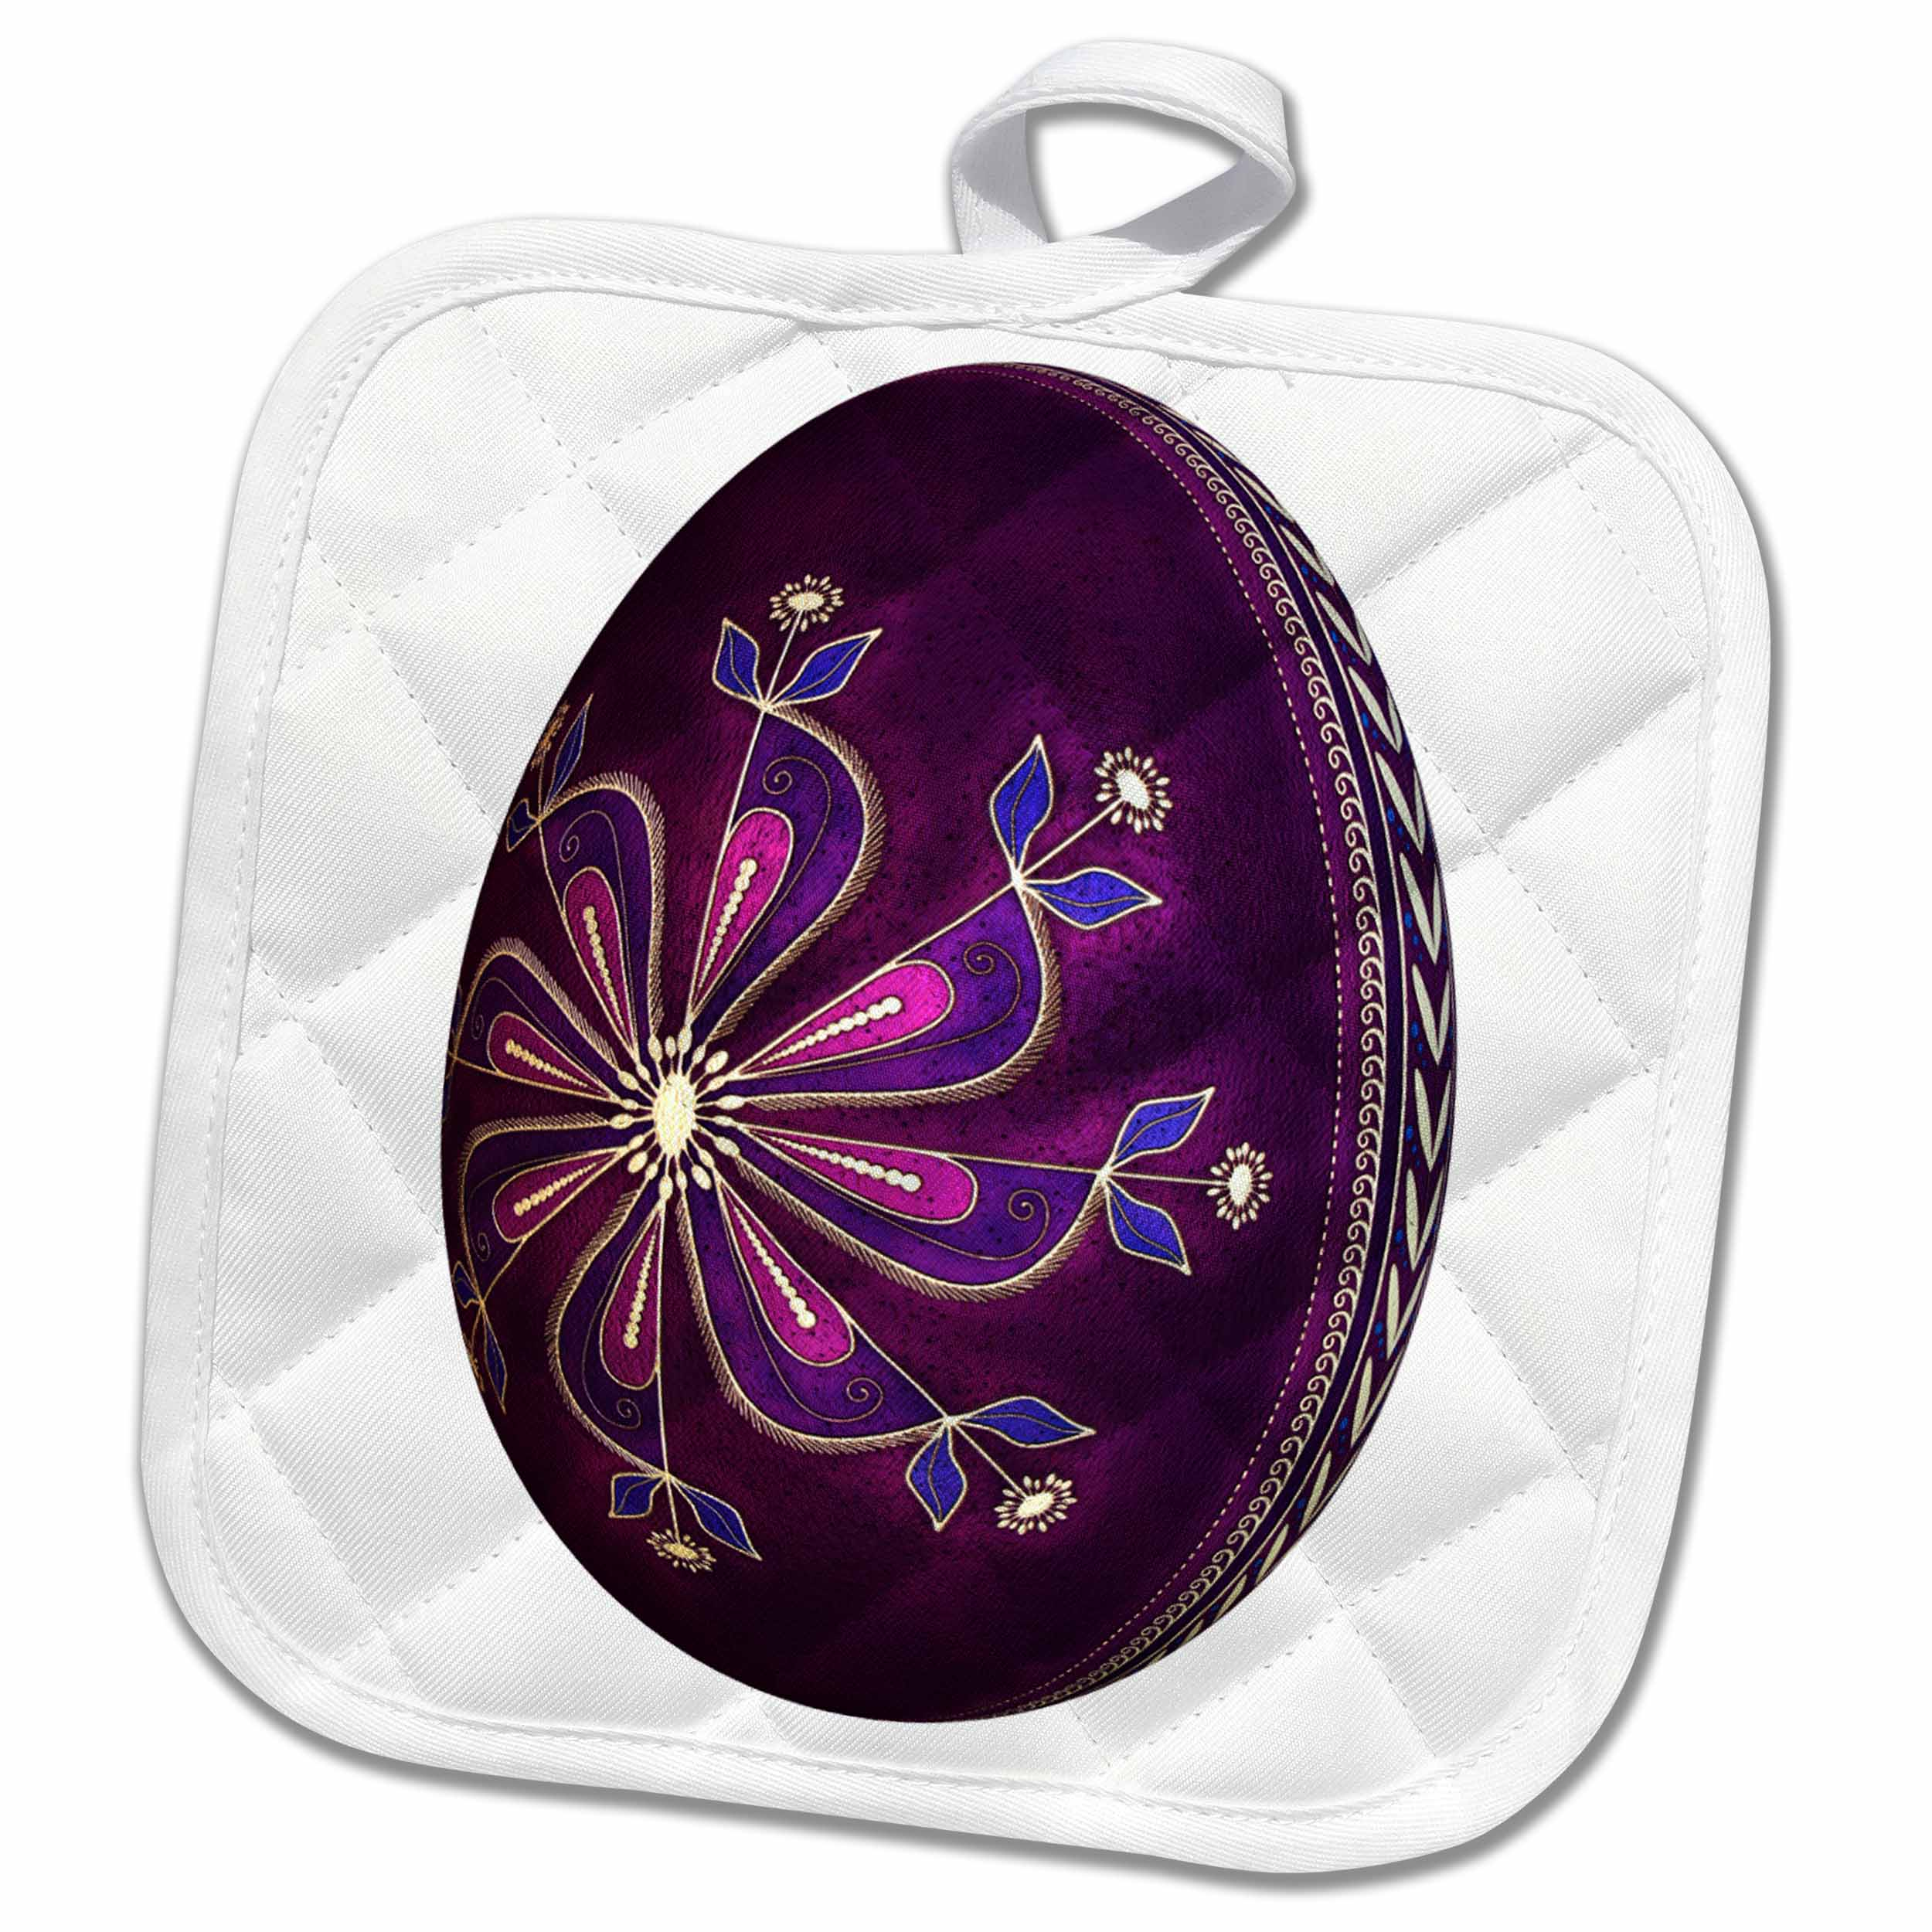 3dRose Dyed Purple Pysanky Easter Egg - Pot Holder, 8 by 8-inch